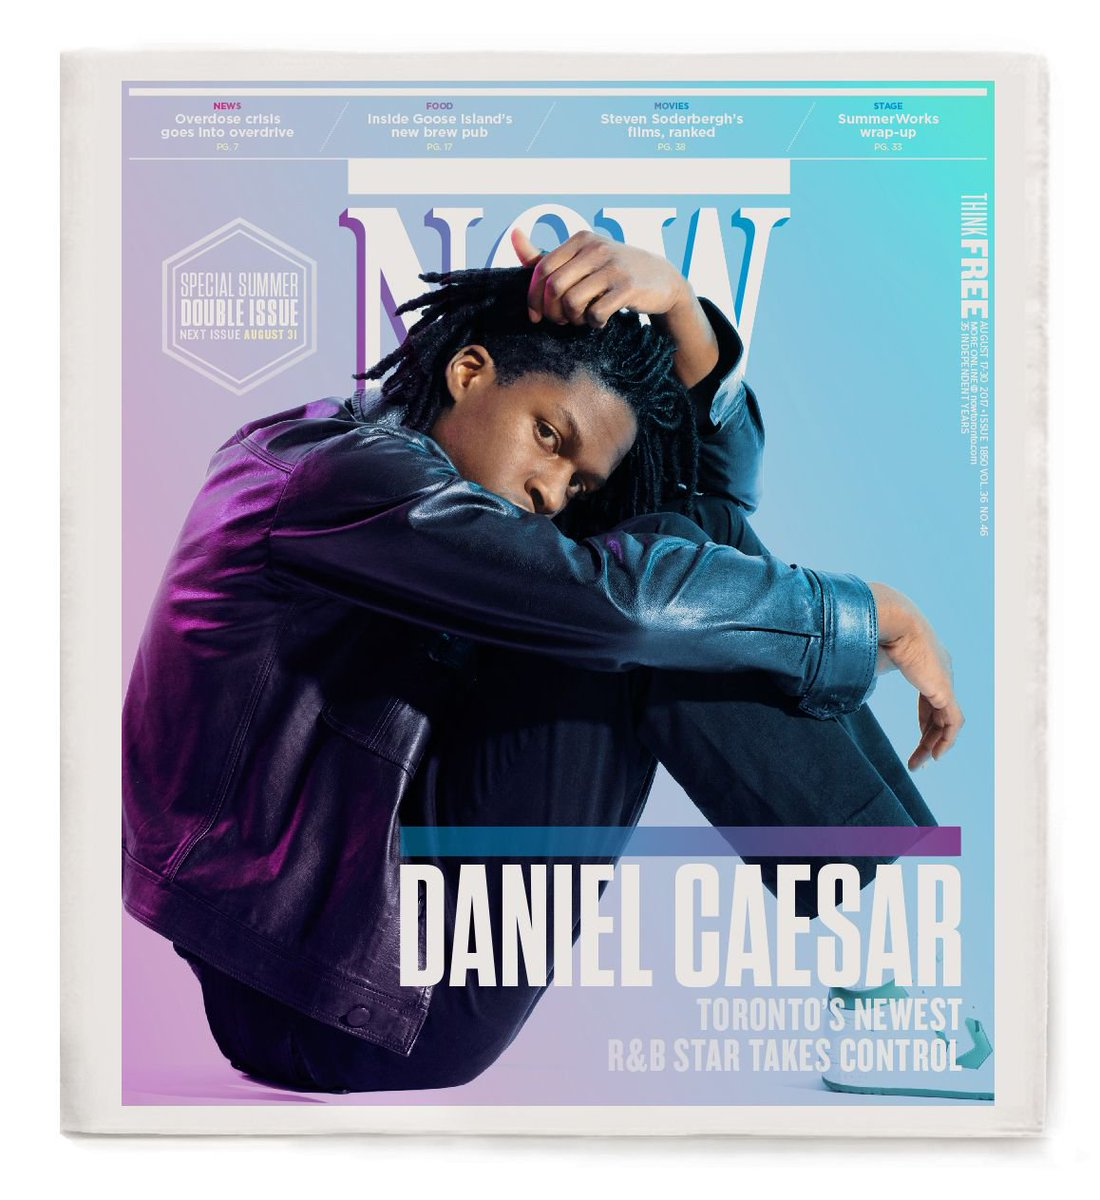 Tomorrow's cover: Toronto's newest R&B star Daniel Caesar https://t.co/ZDLKlt14TN